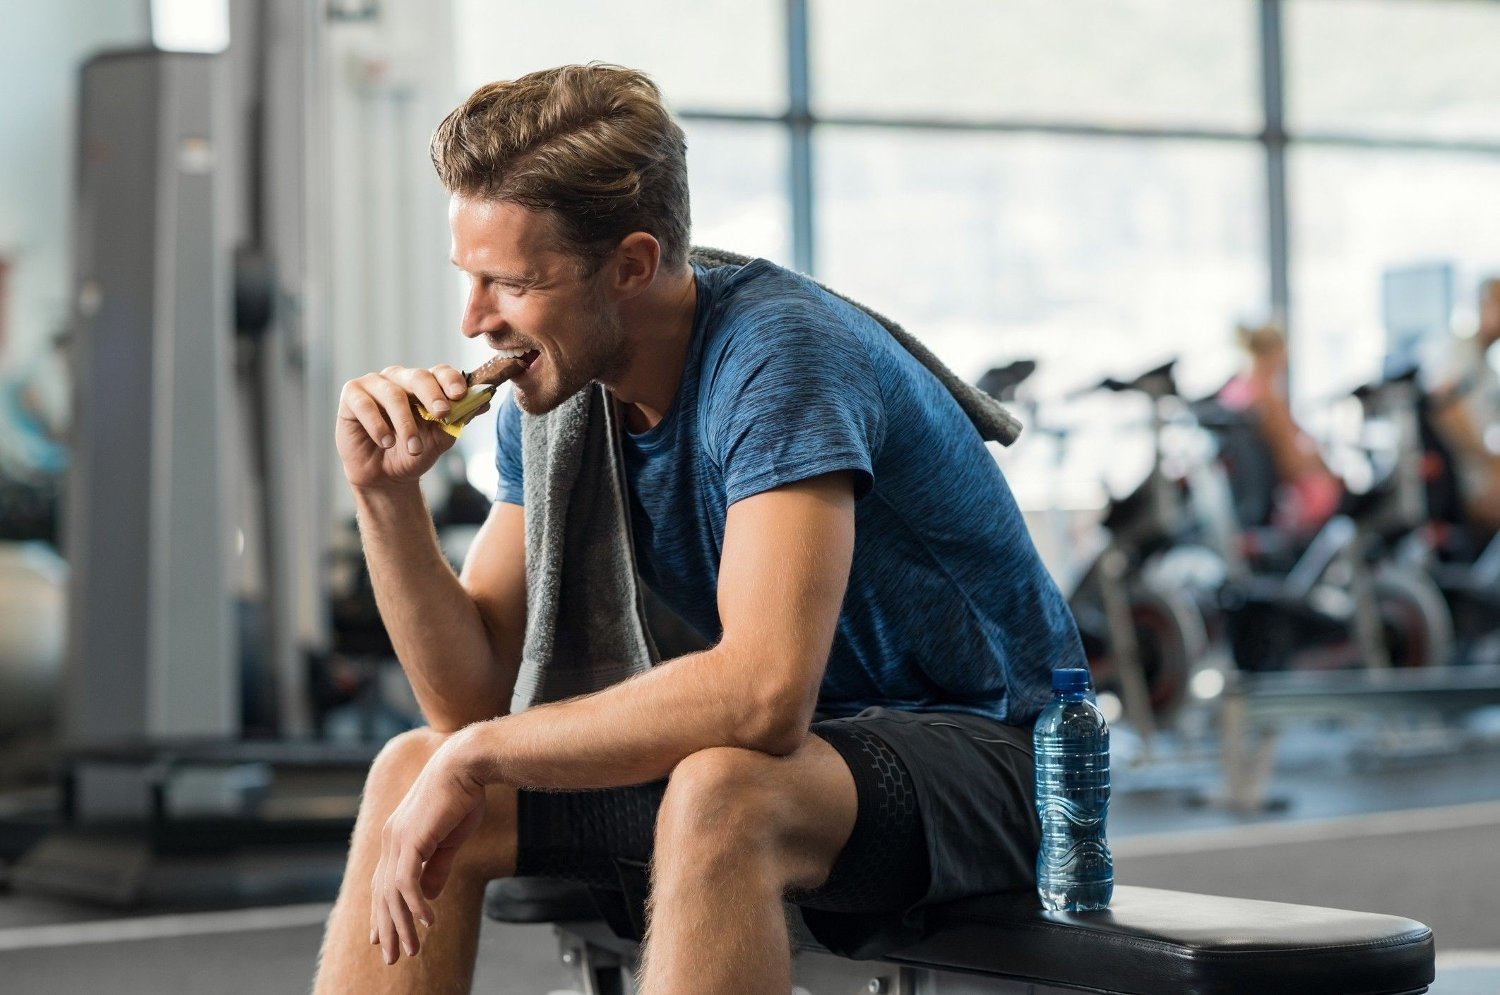 Man eating energy bar Sweaty young man eating energy bar at gym. Handsome mid guy enjoying chocolate after a heavy workout in fitness studio. Fit man biting a snack and resting on bench.